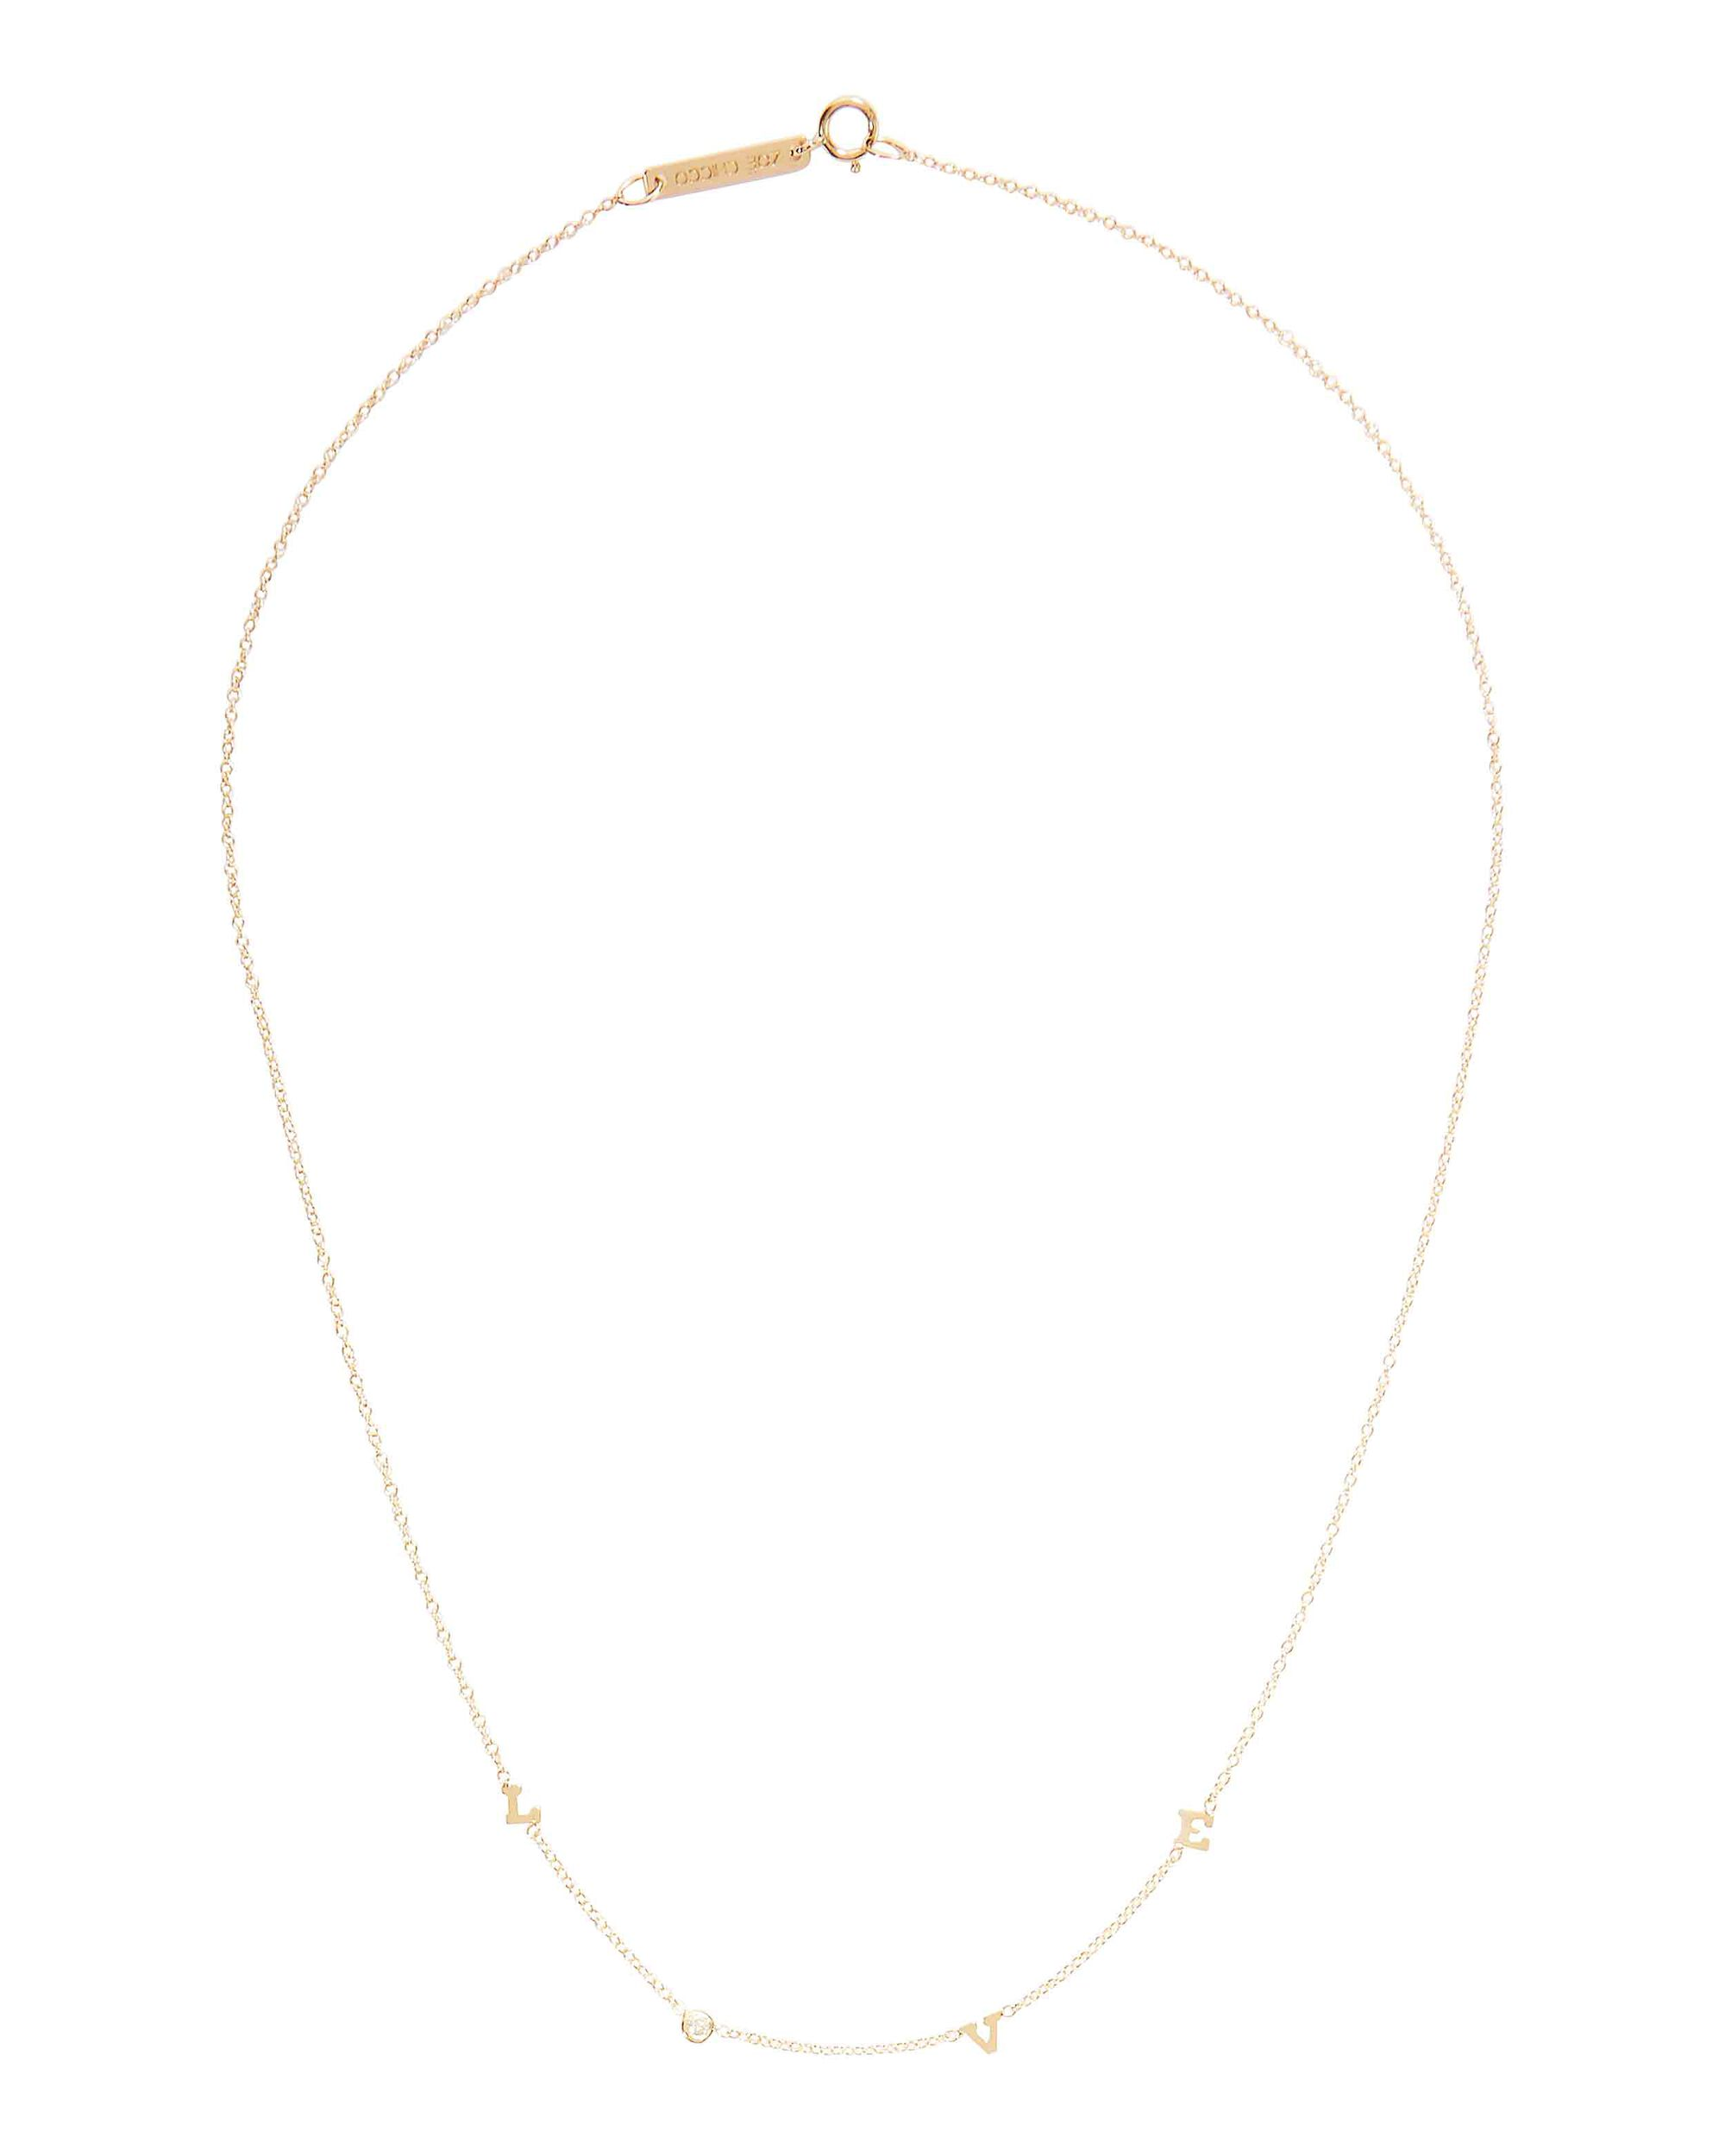 Tiny Love Necklace, GOLD, hi-res